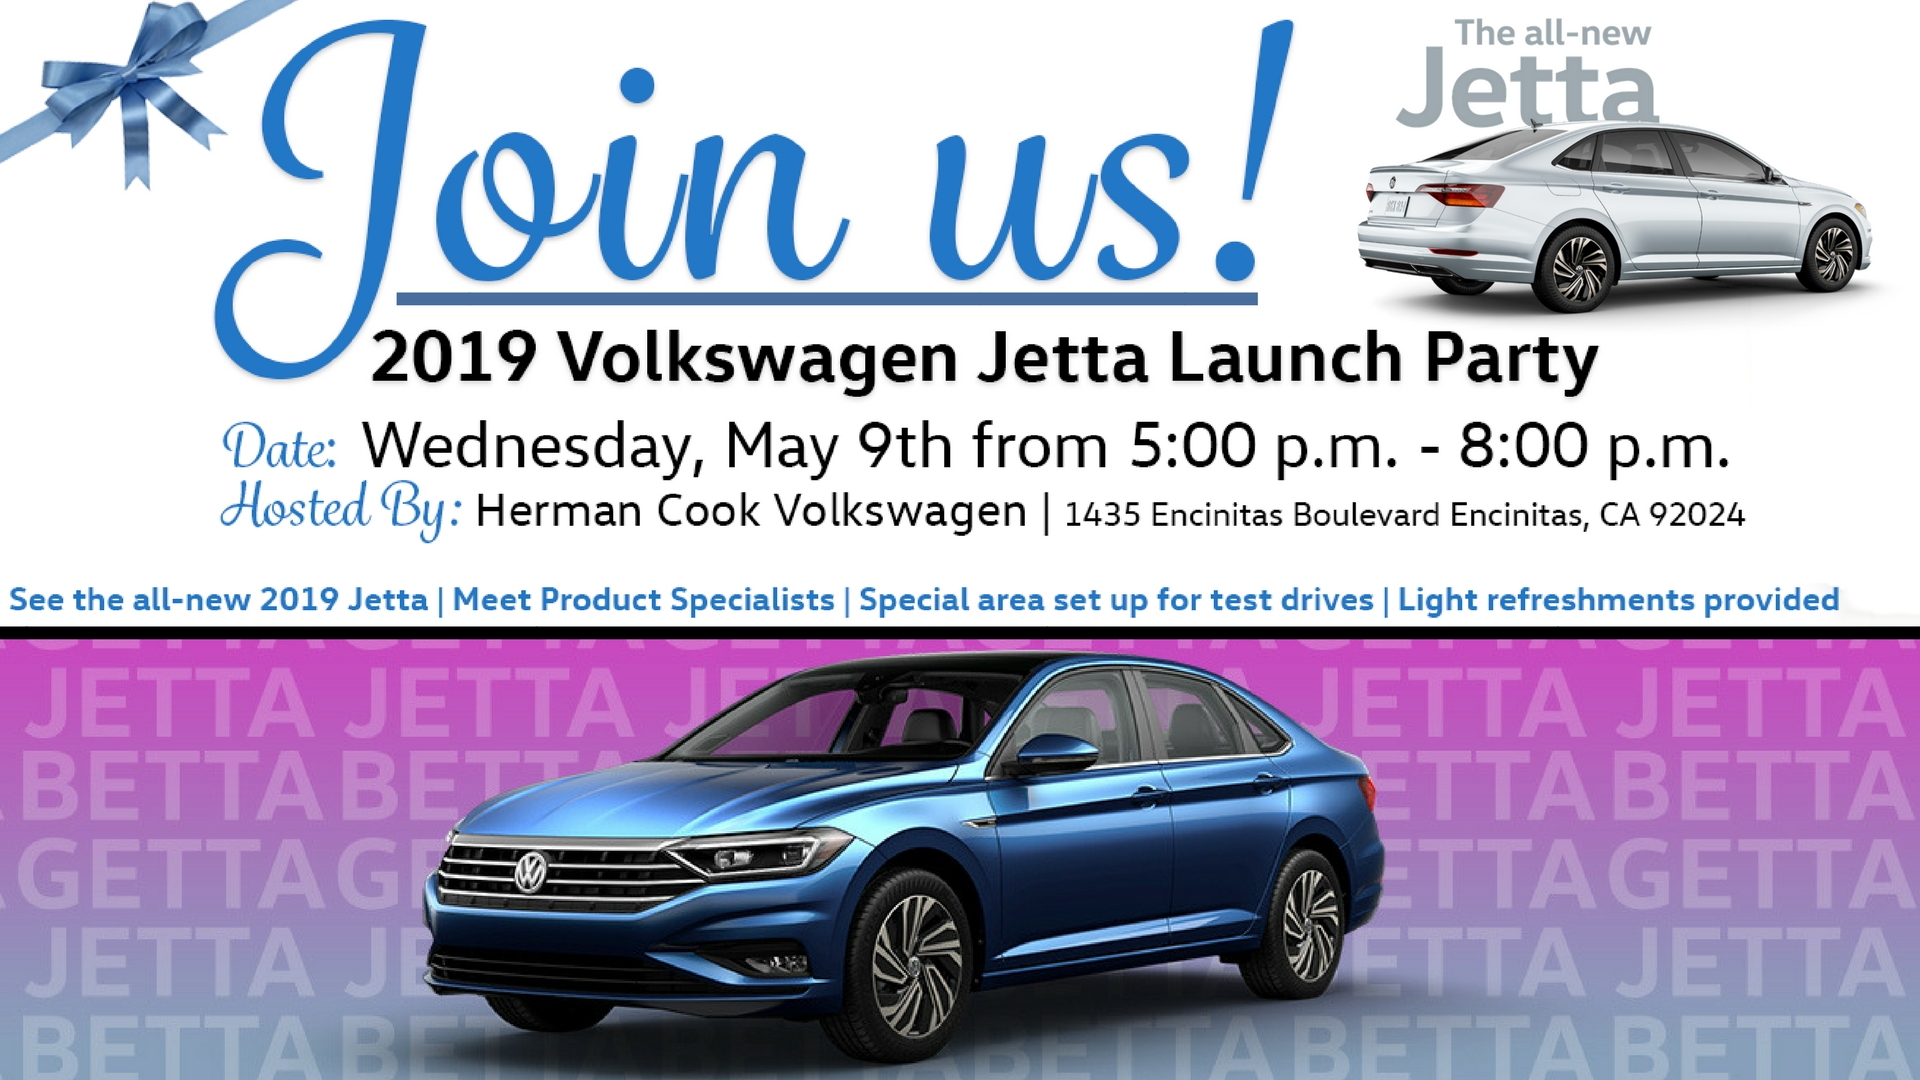 2019 Jetta Launch Party Invite